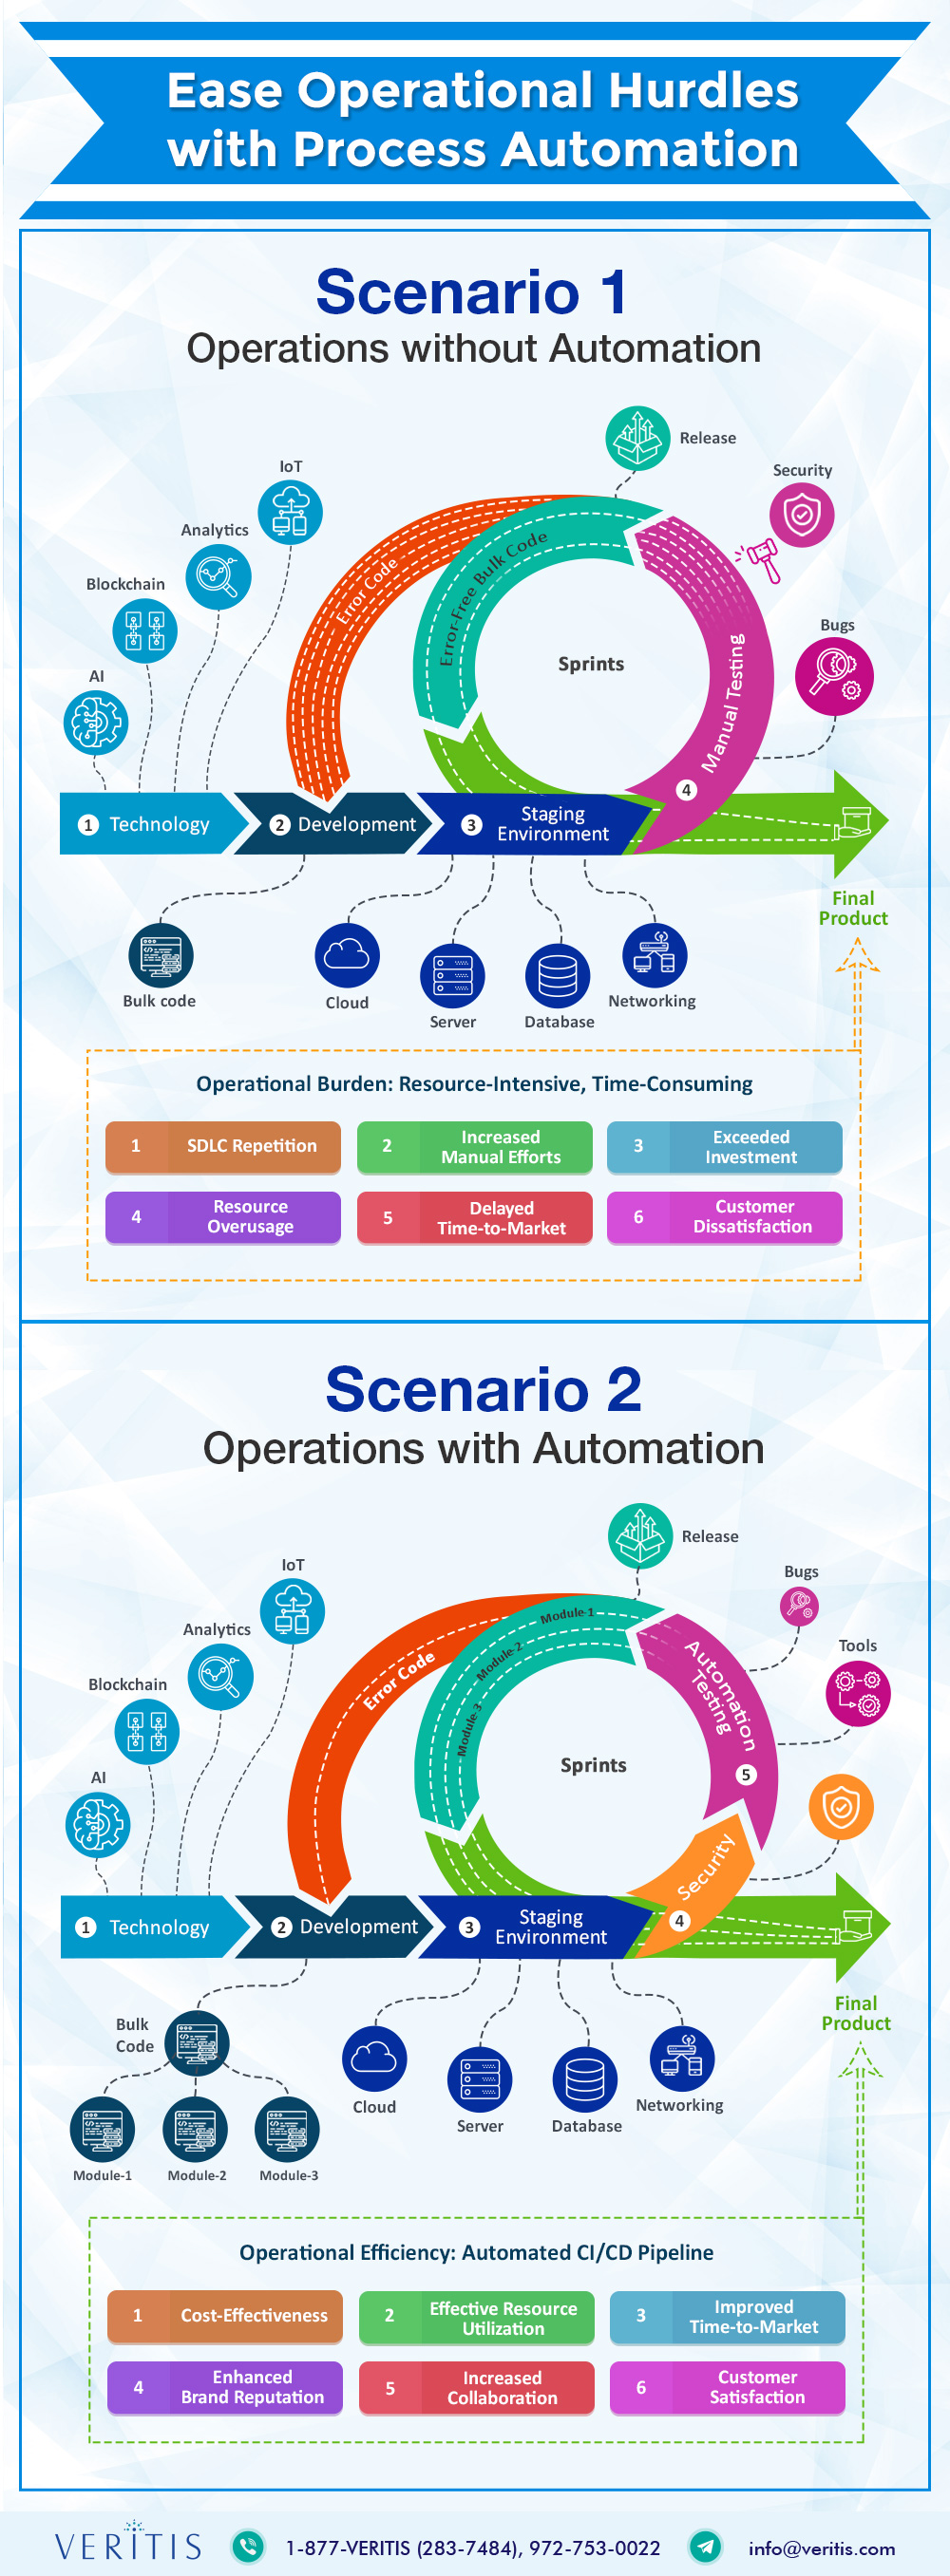 Ease Operational Hurdles with Process Automation Infographic